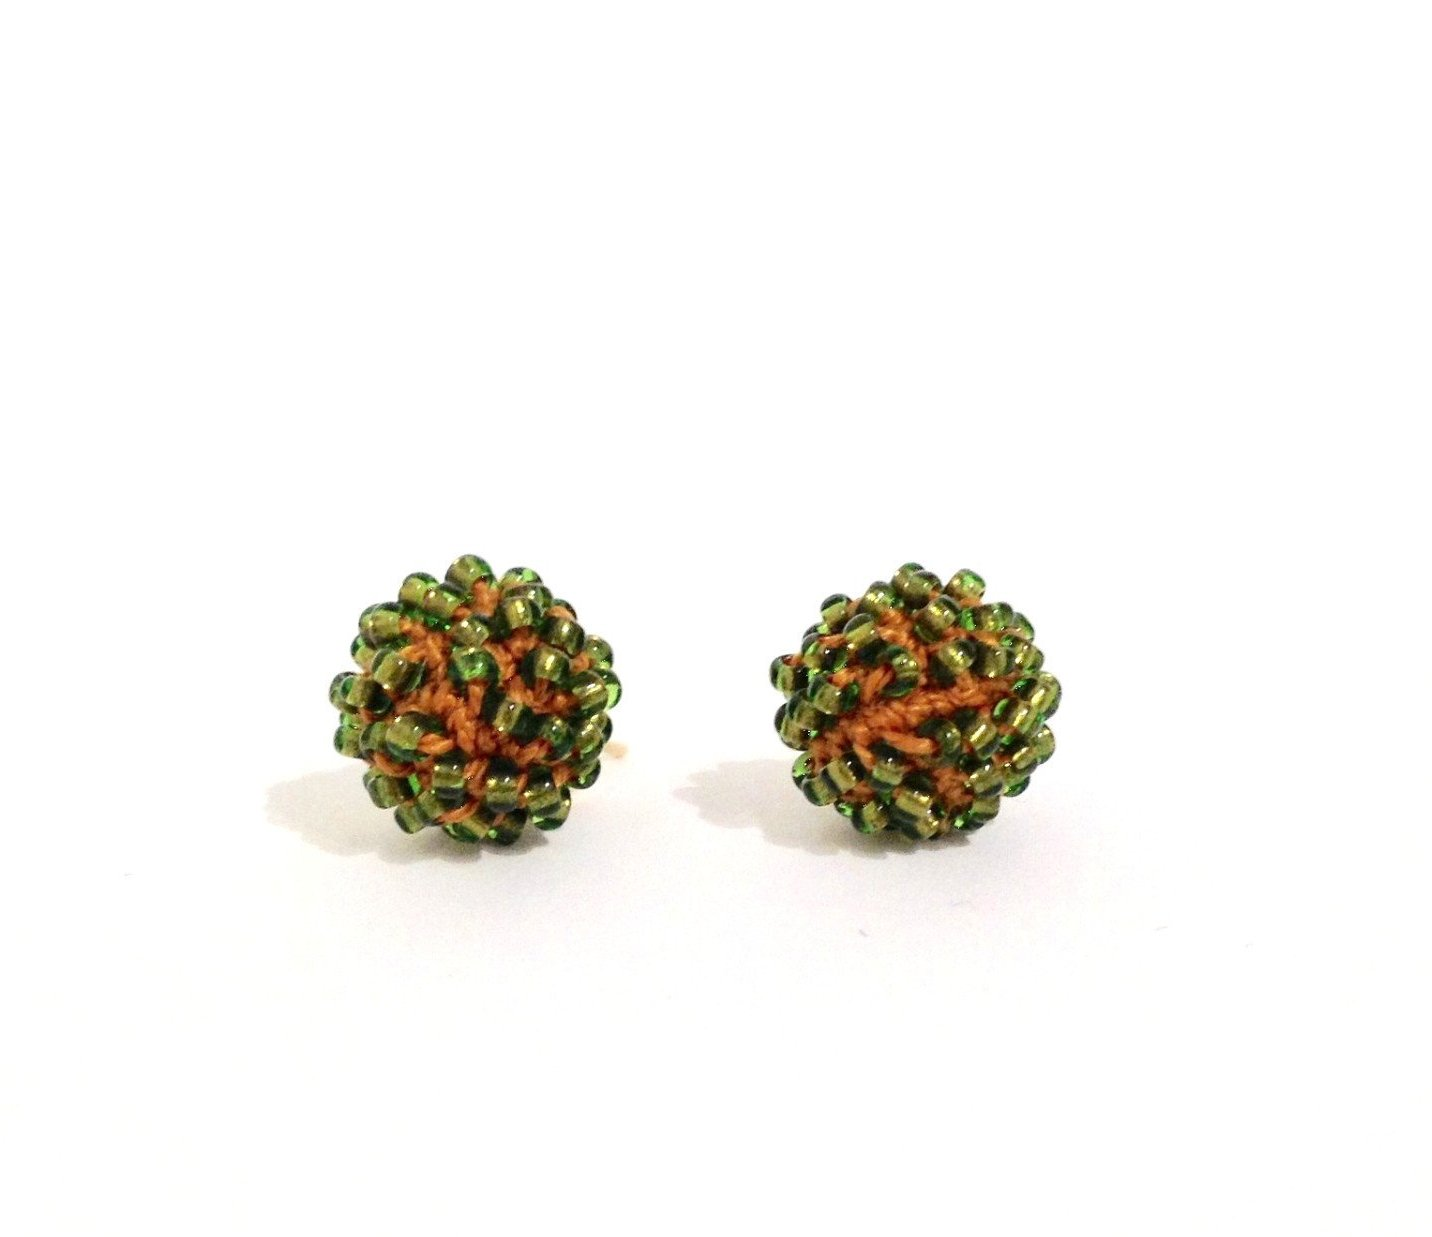 Green Copper Stud Earrings by Yael Krakowski